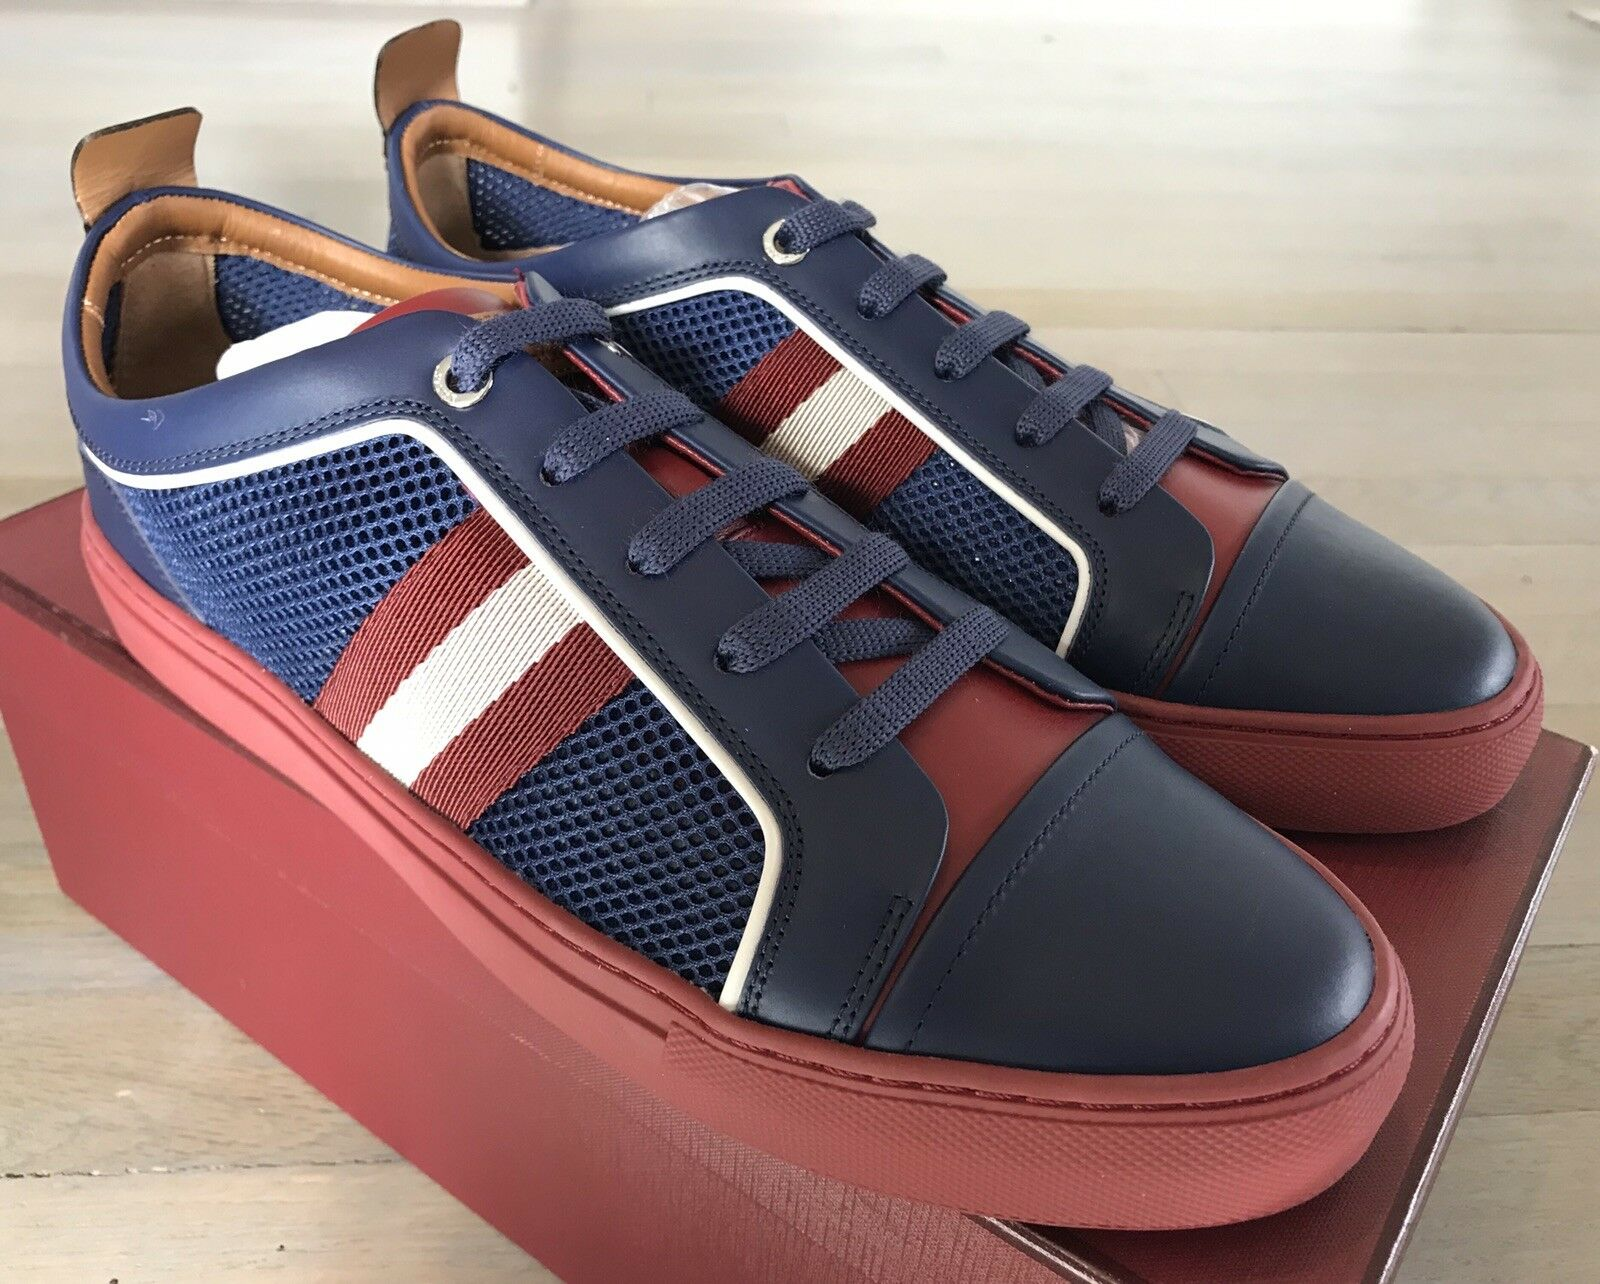 550  Bally Hegor bluee Leather and Nylon Sneakers size US 13